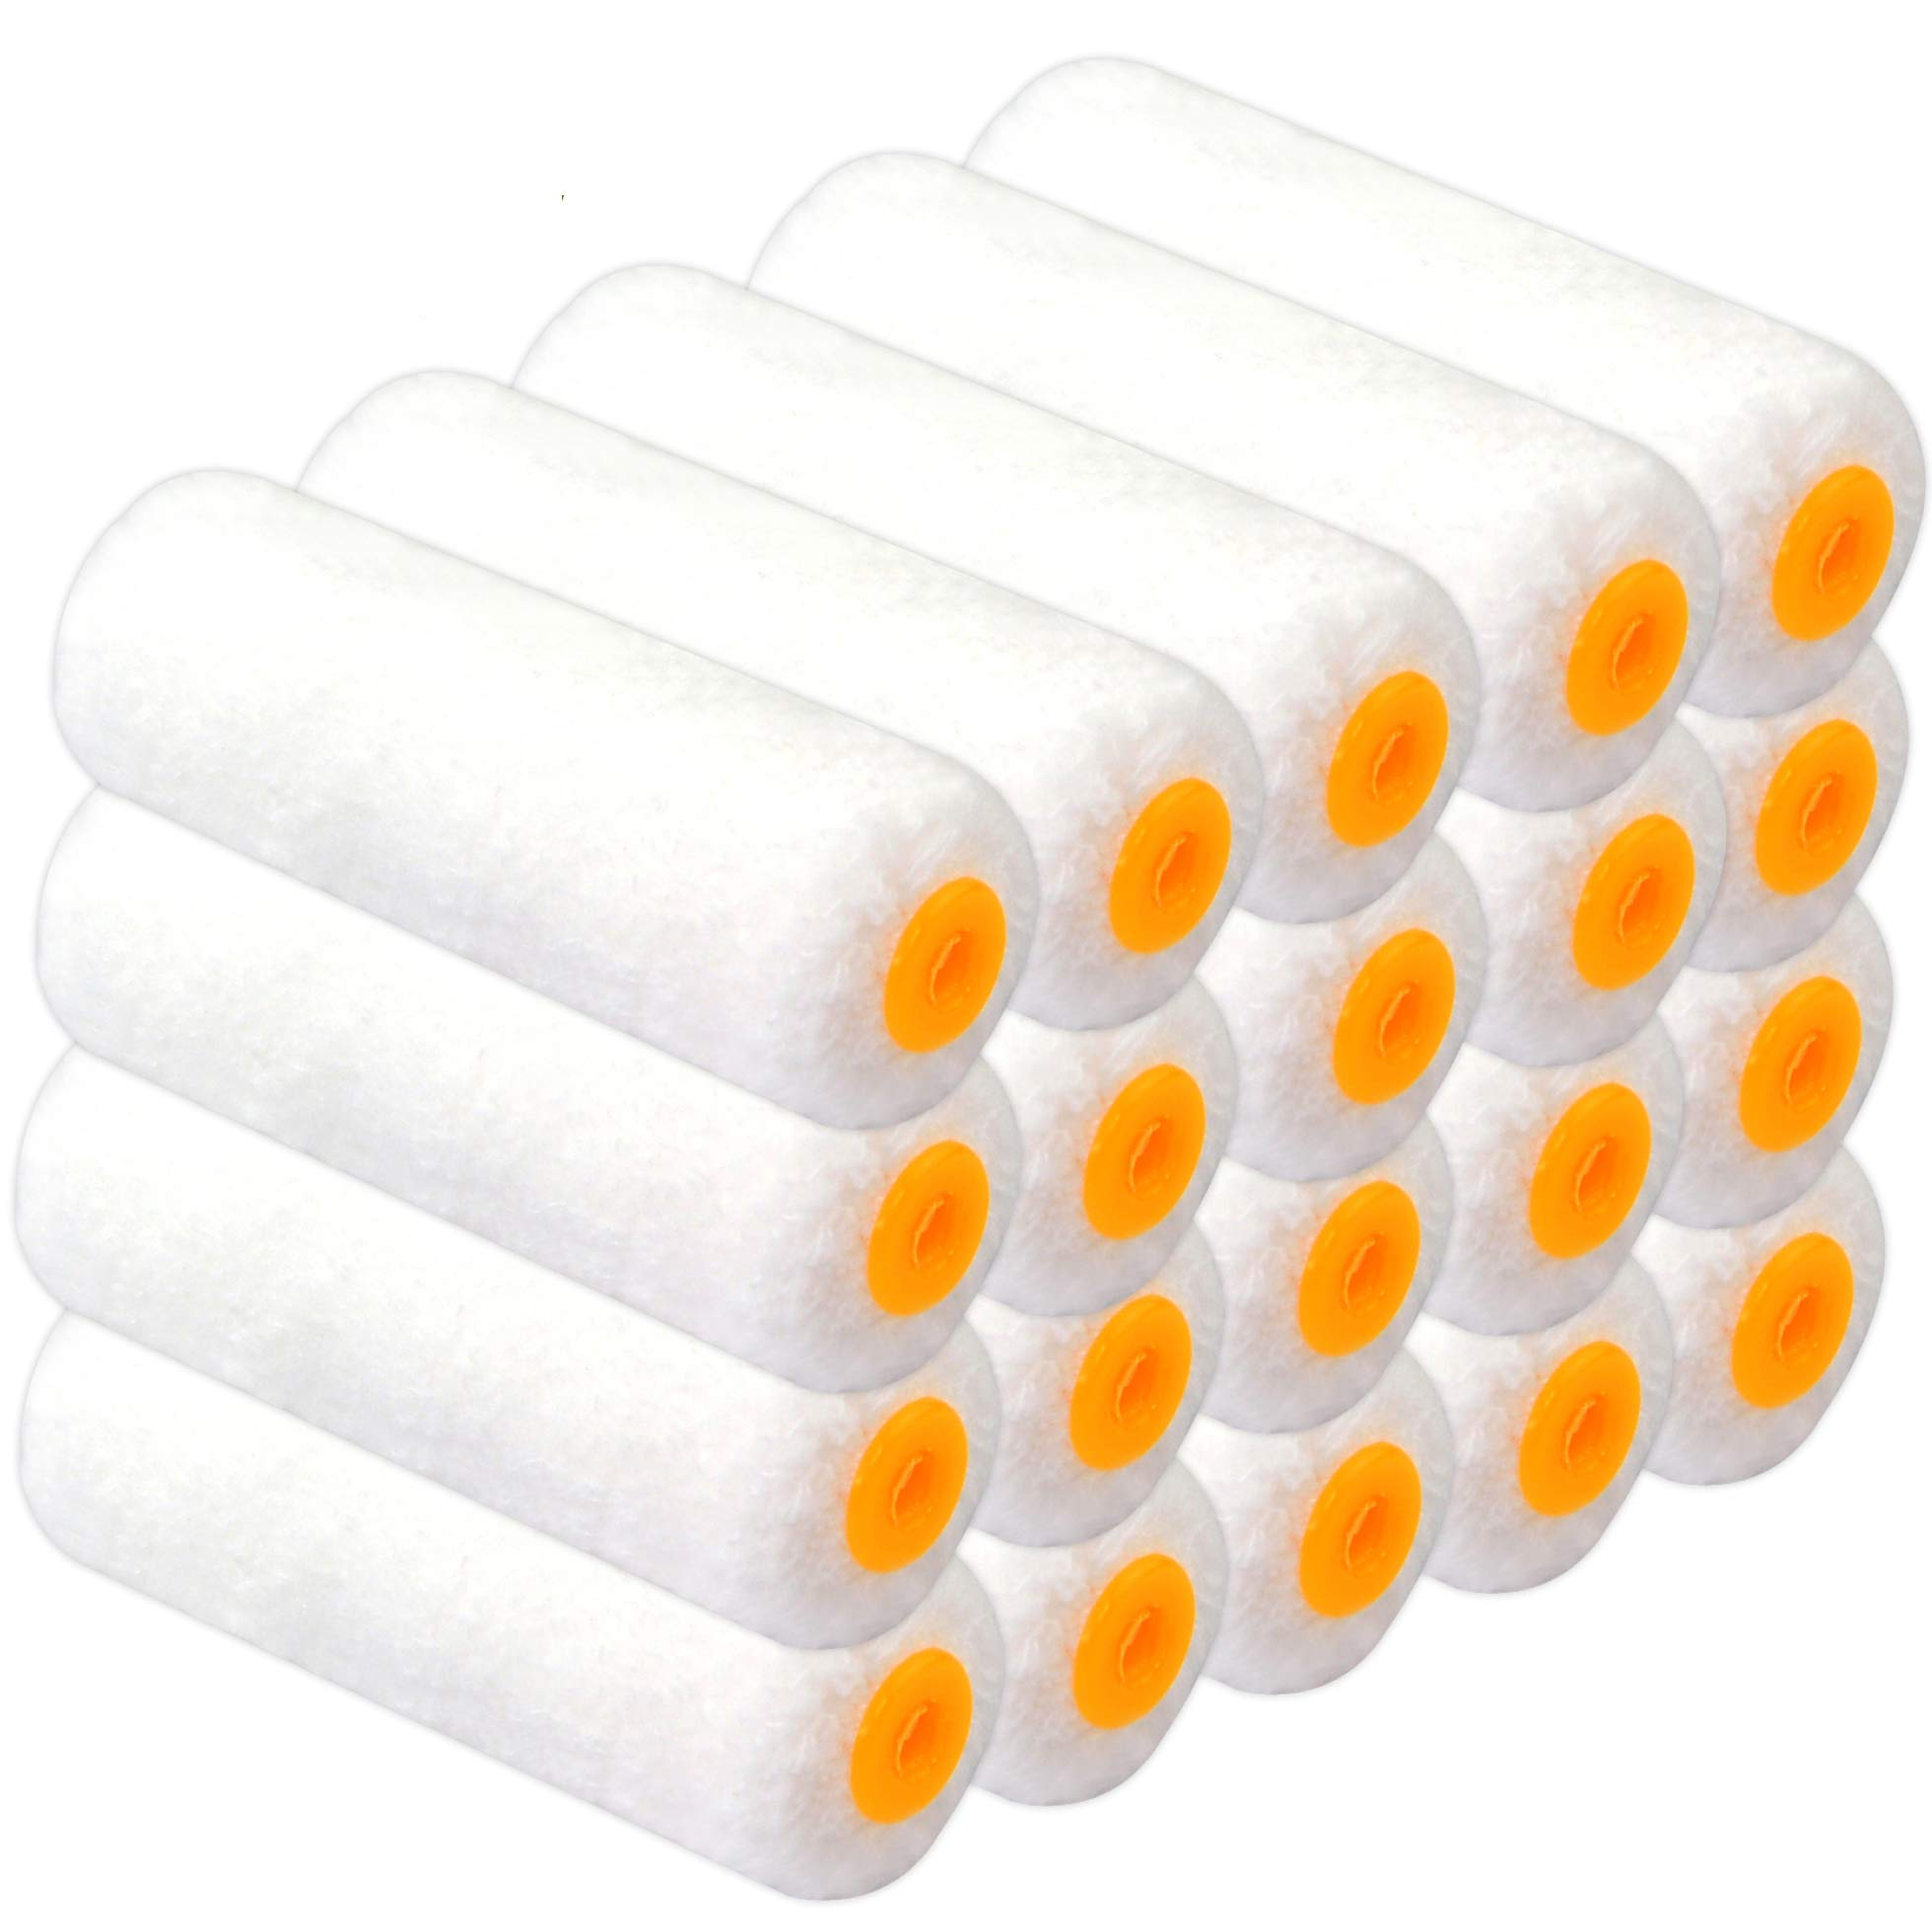 5 High-Capacity Polyester Rollers 7PCS Lightdot Hardware 1 Roller Frame 1 Mental Tray Paint Tray,Paint Roller